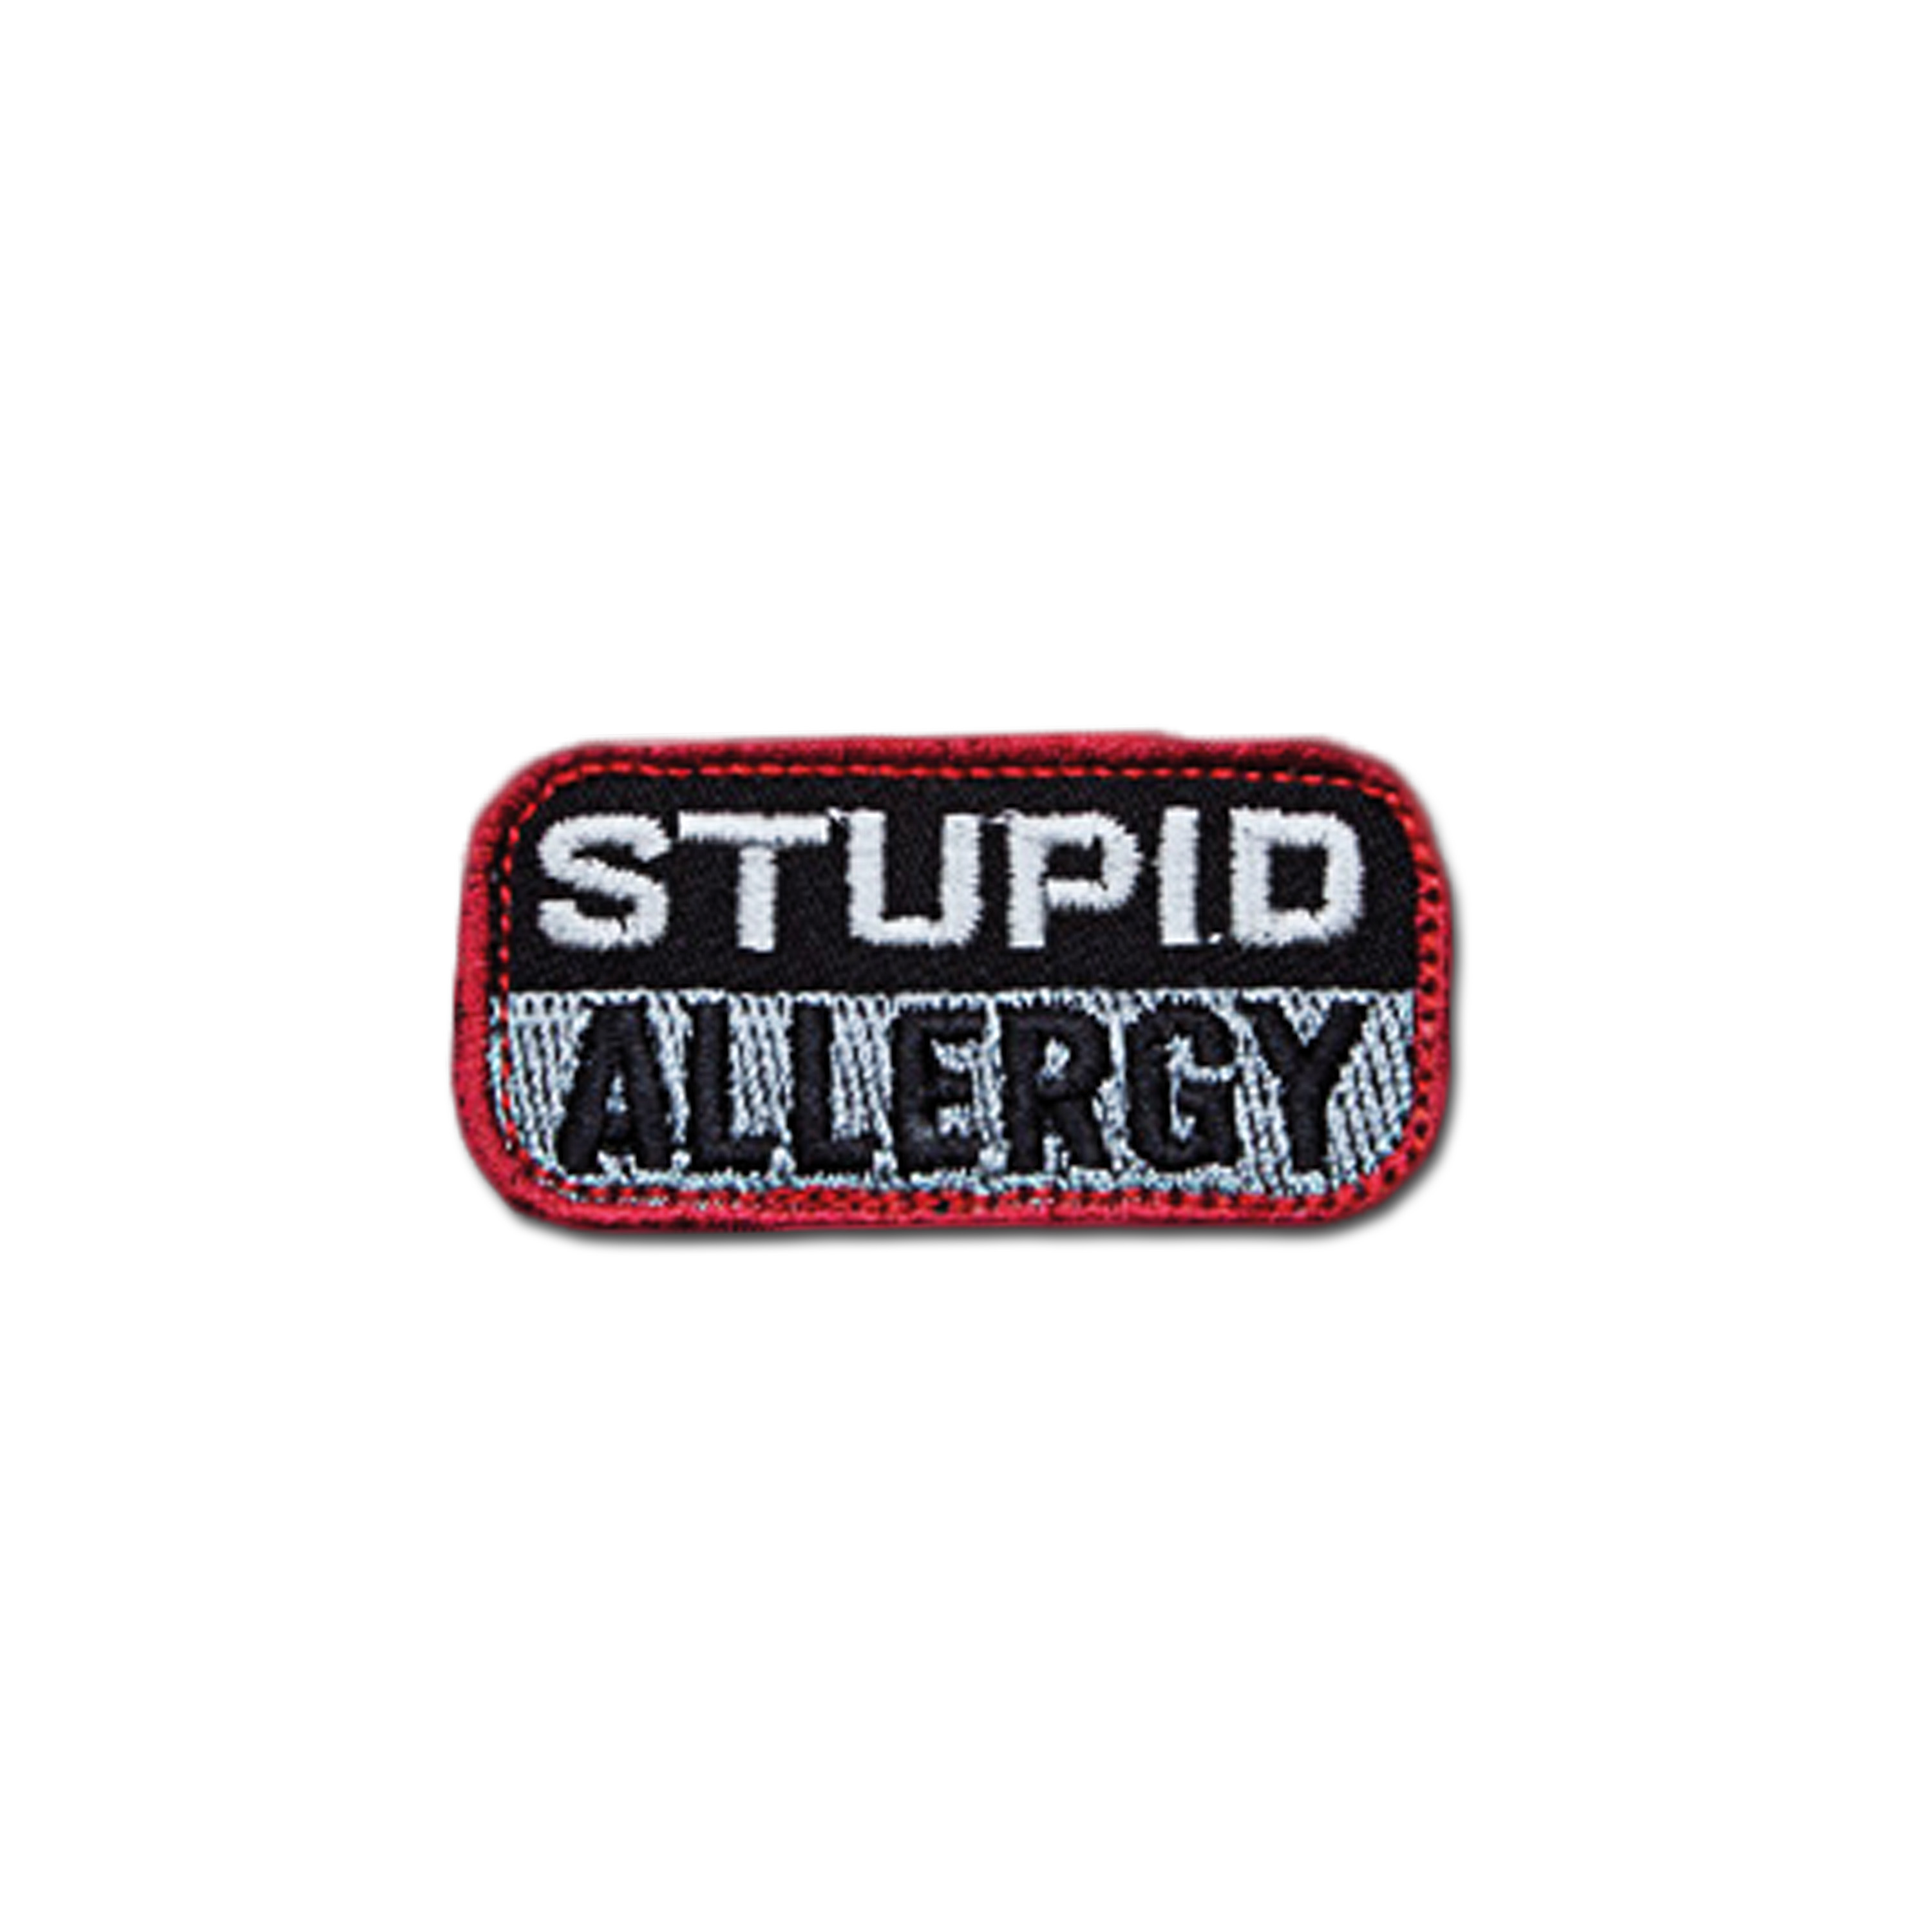 MilSpecMonkey Patch Stupid Allergie swat